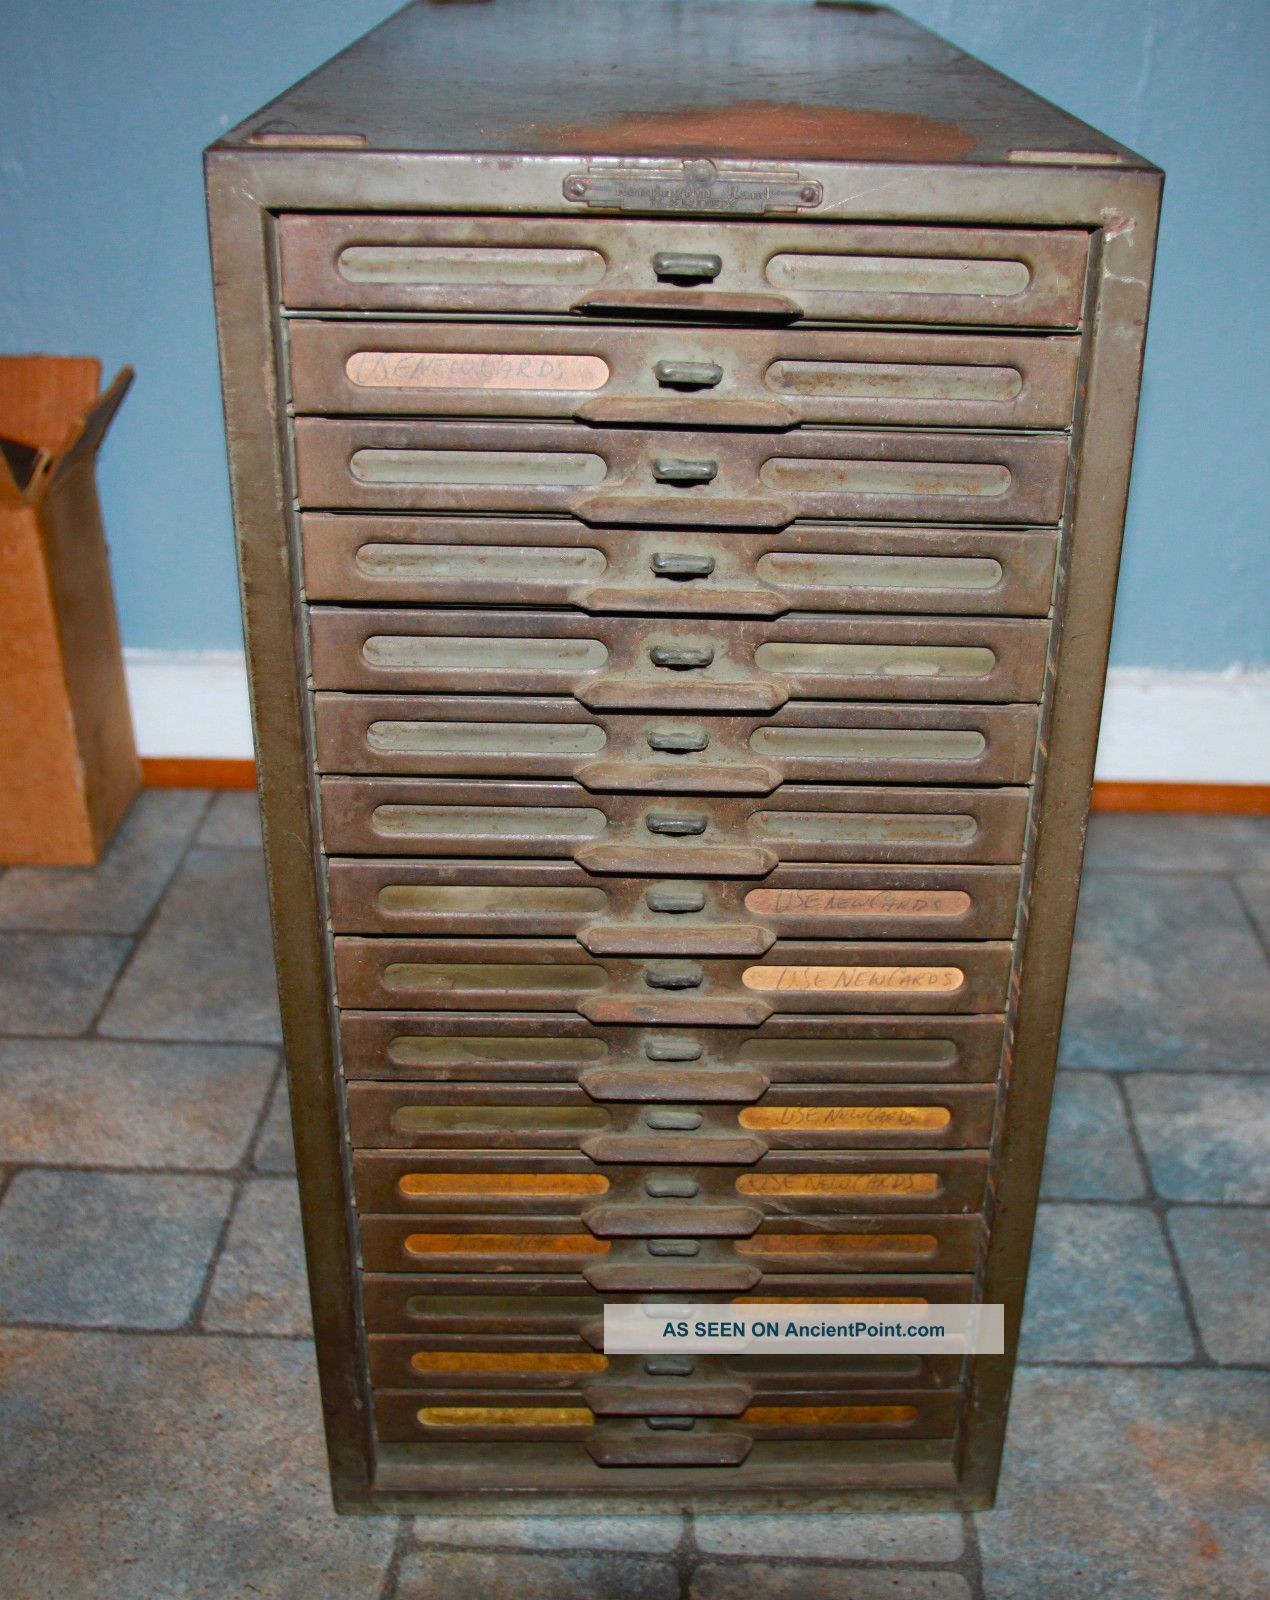 Vintage Remington Rand Kardex Metal File Cabinet 16 Drawers Factory 1900 1950 Photo